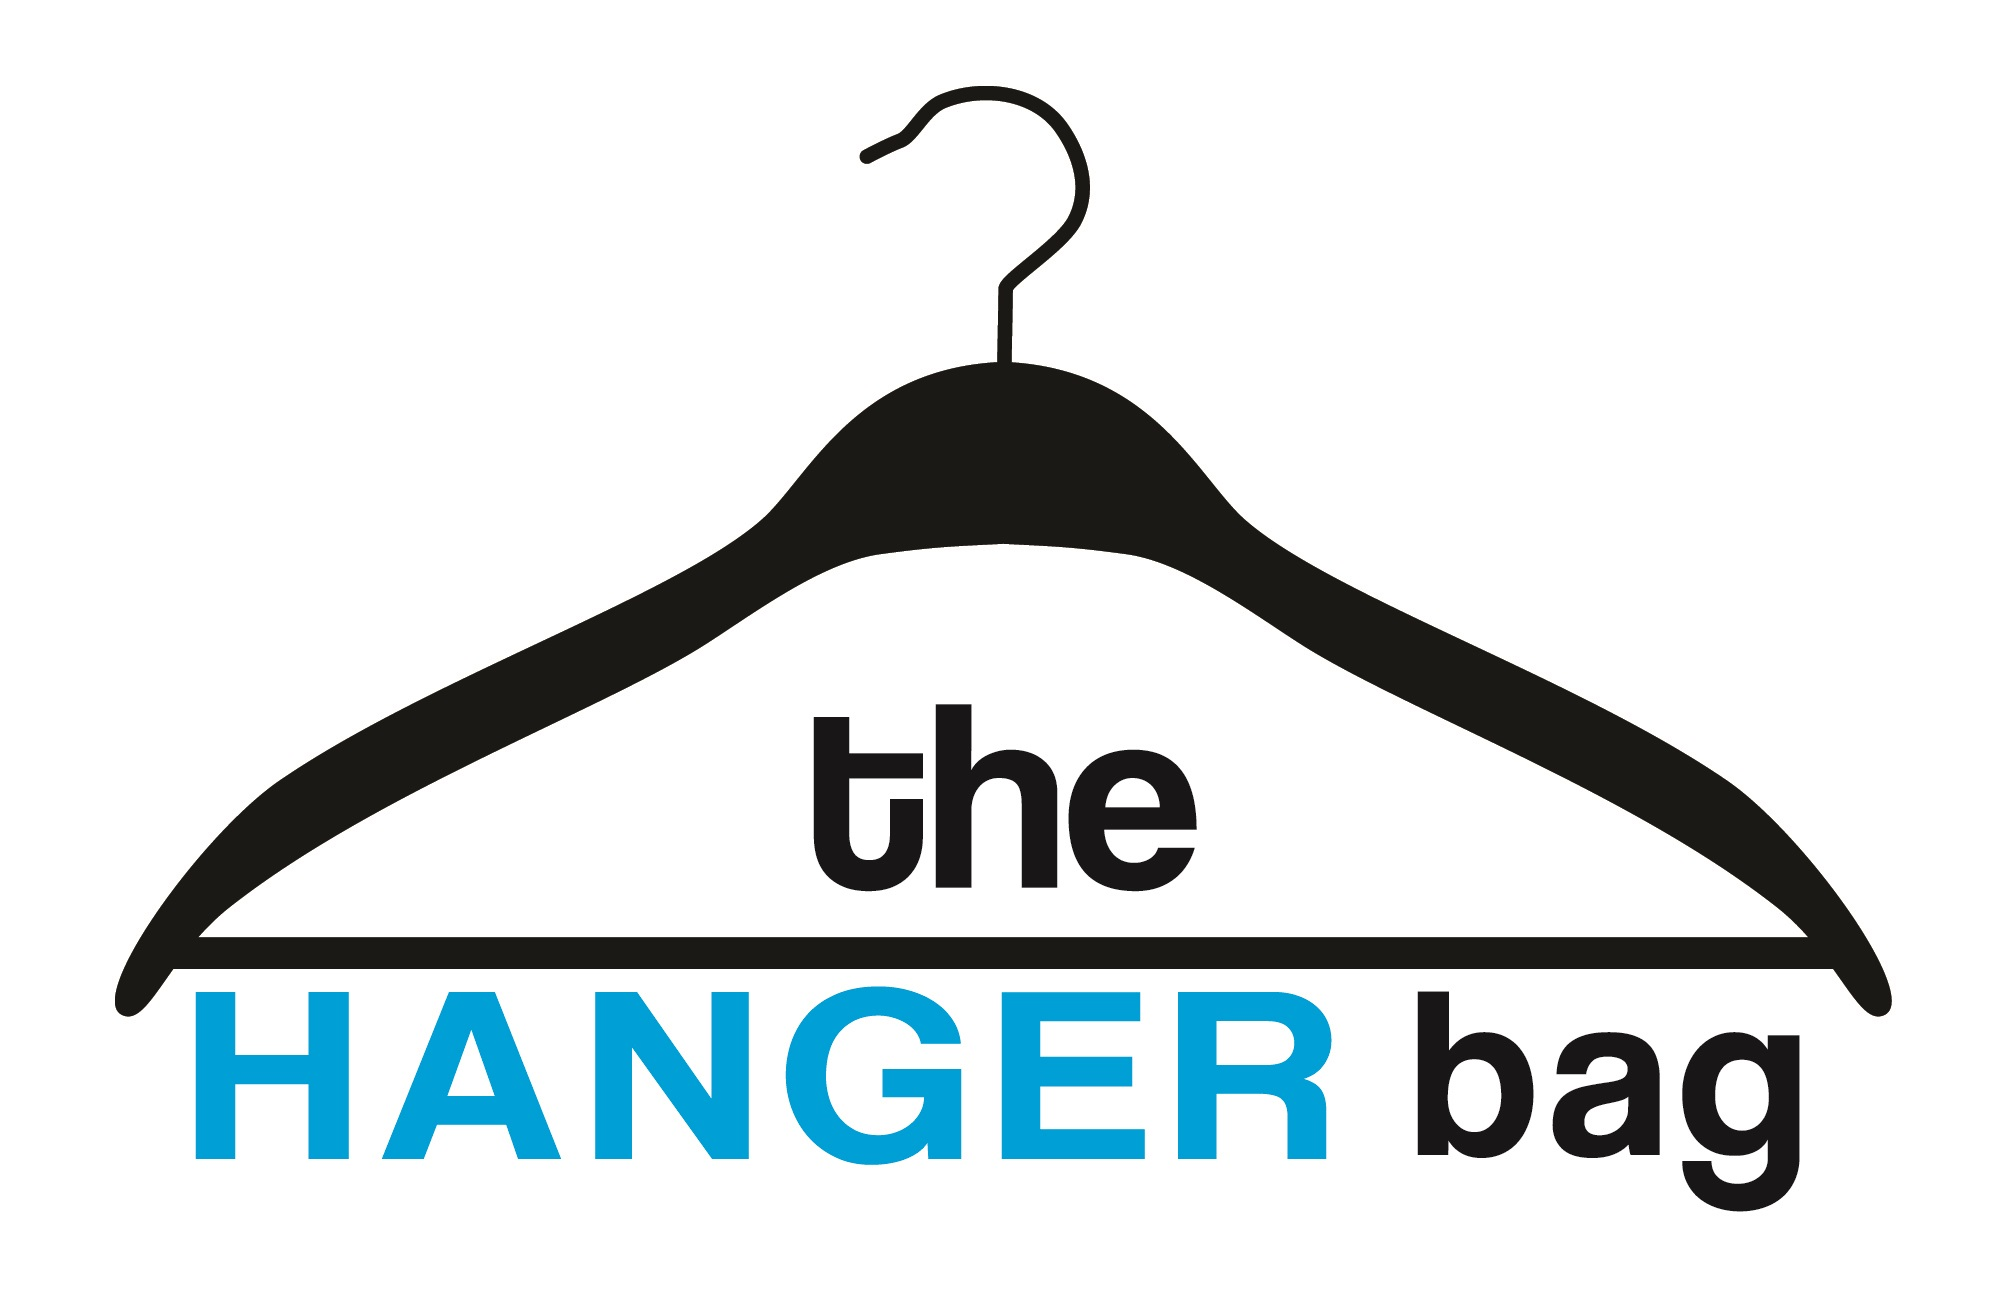 the hanger bag logo